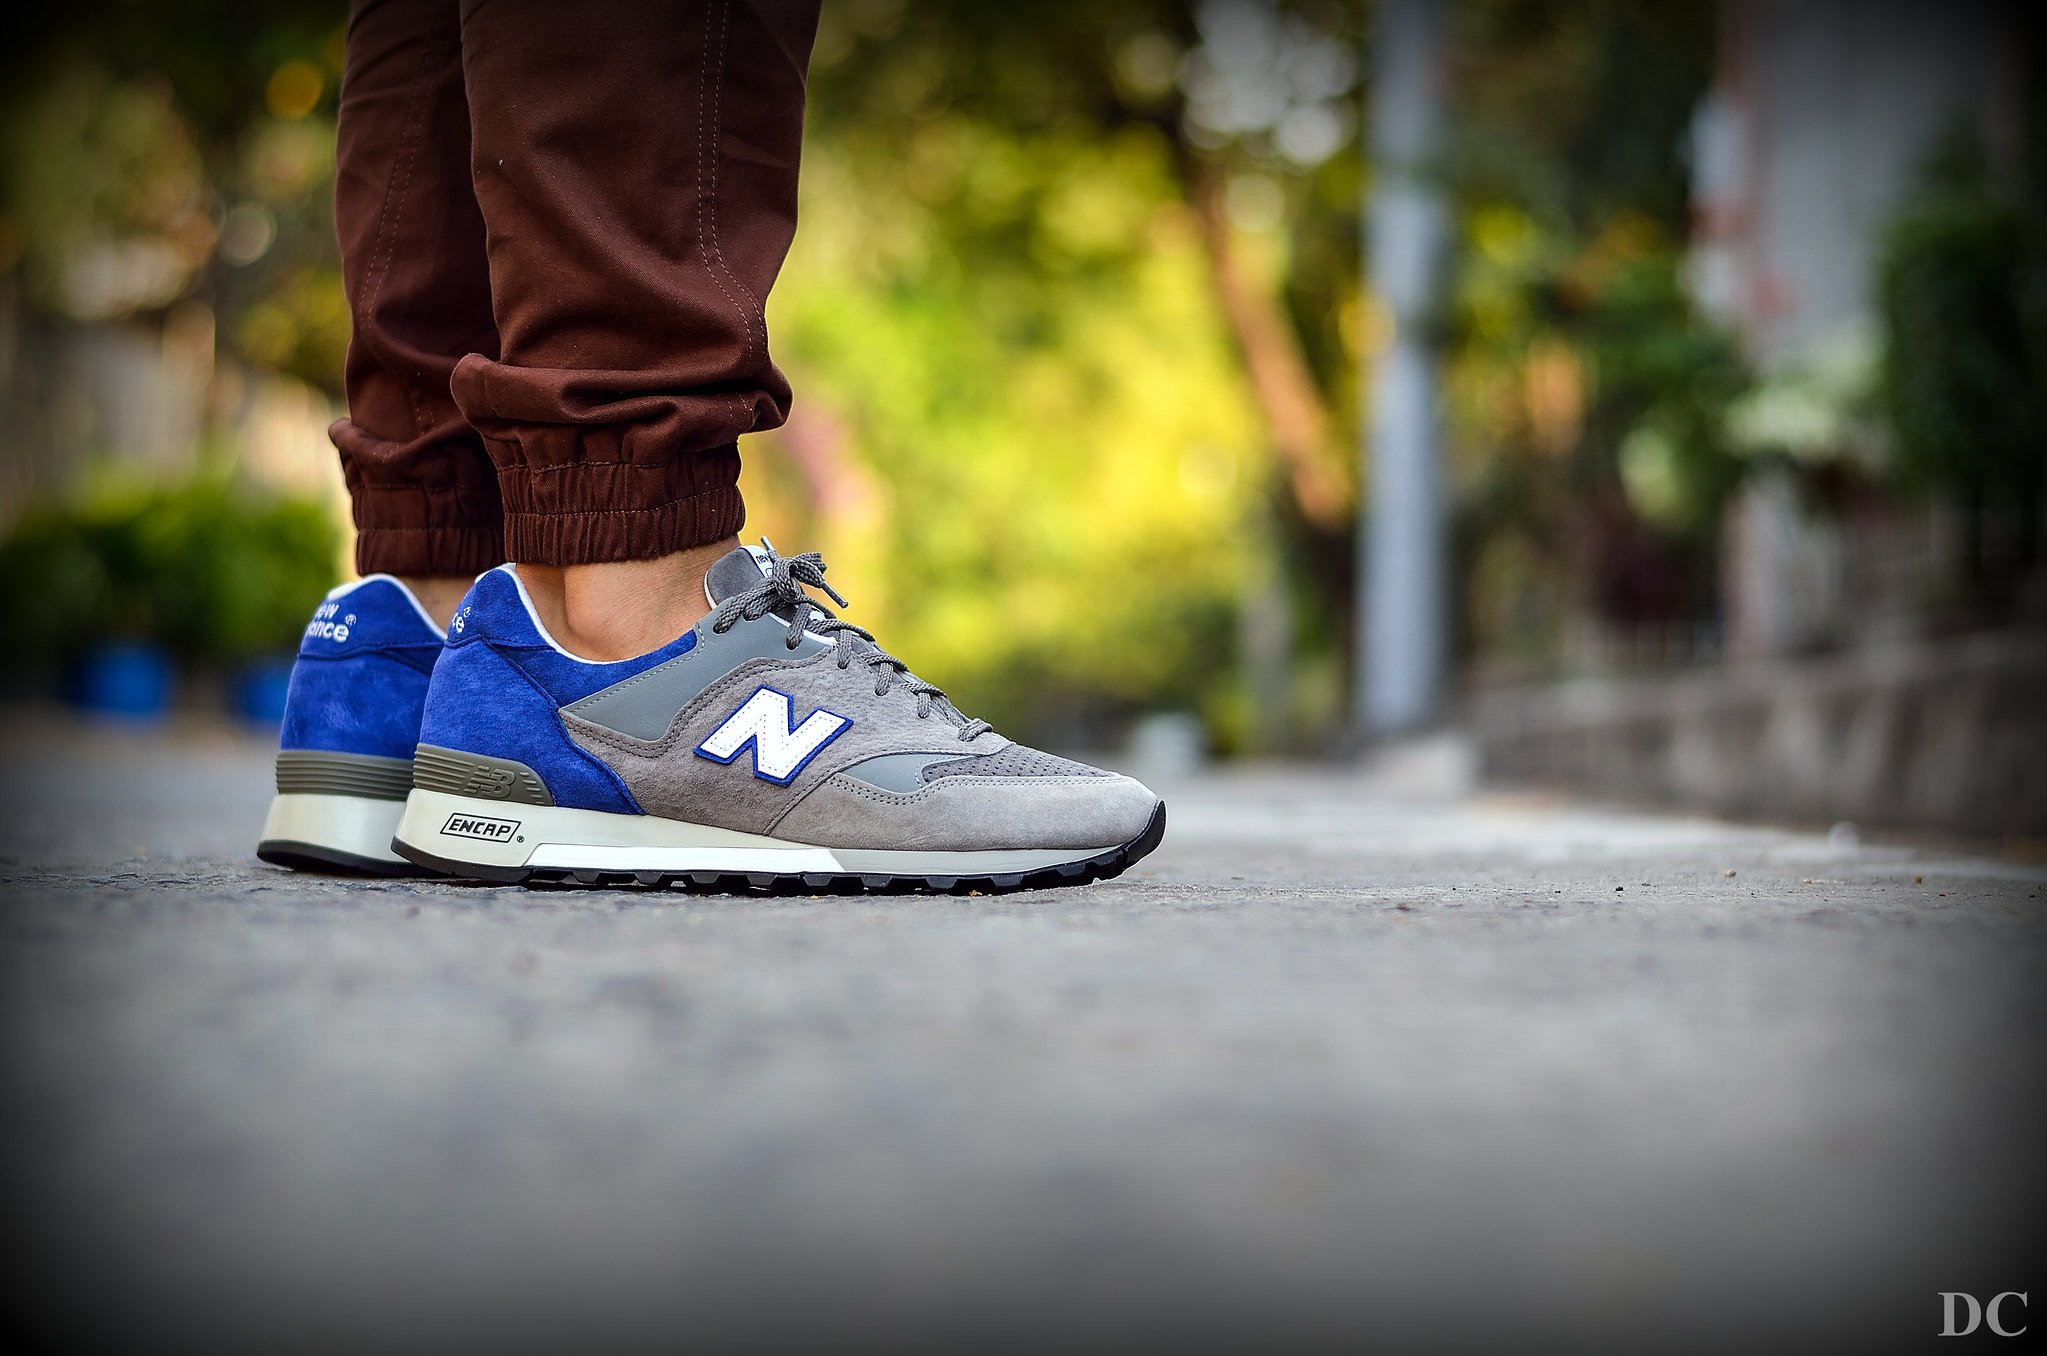 The Good Will Out x New Balance 577 - Day Time Driver